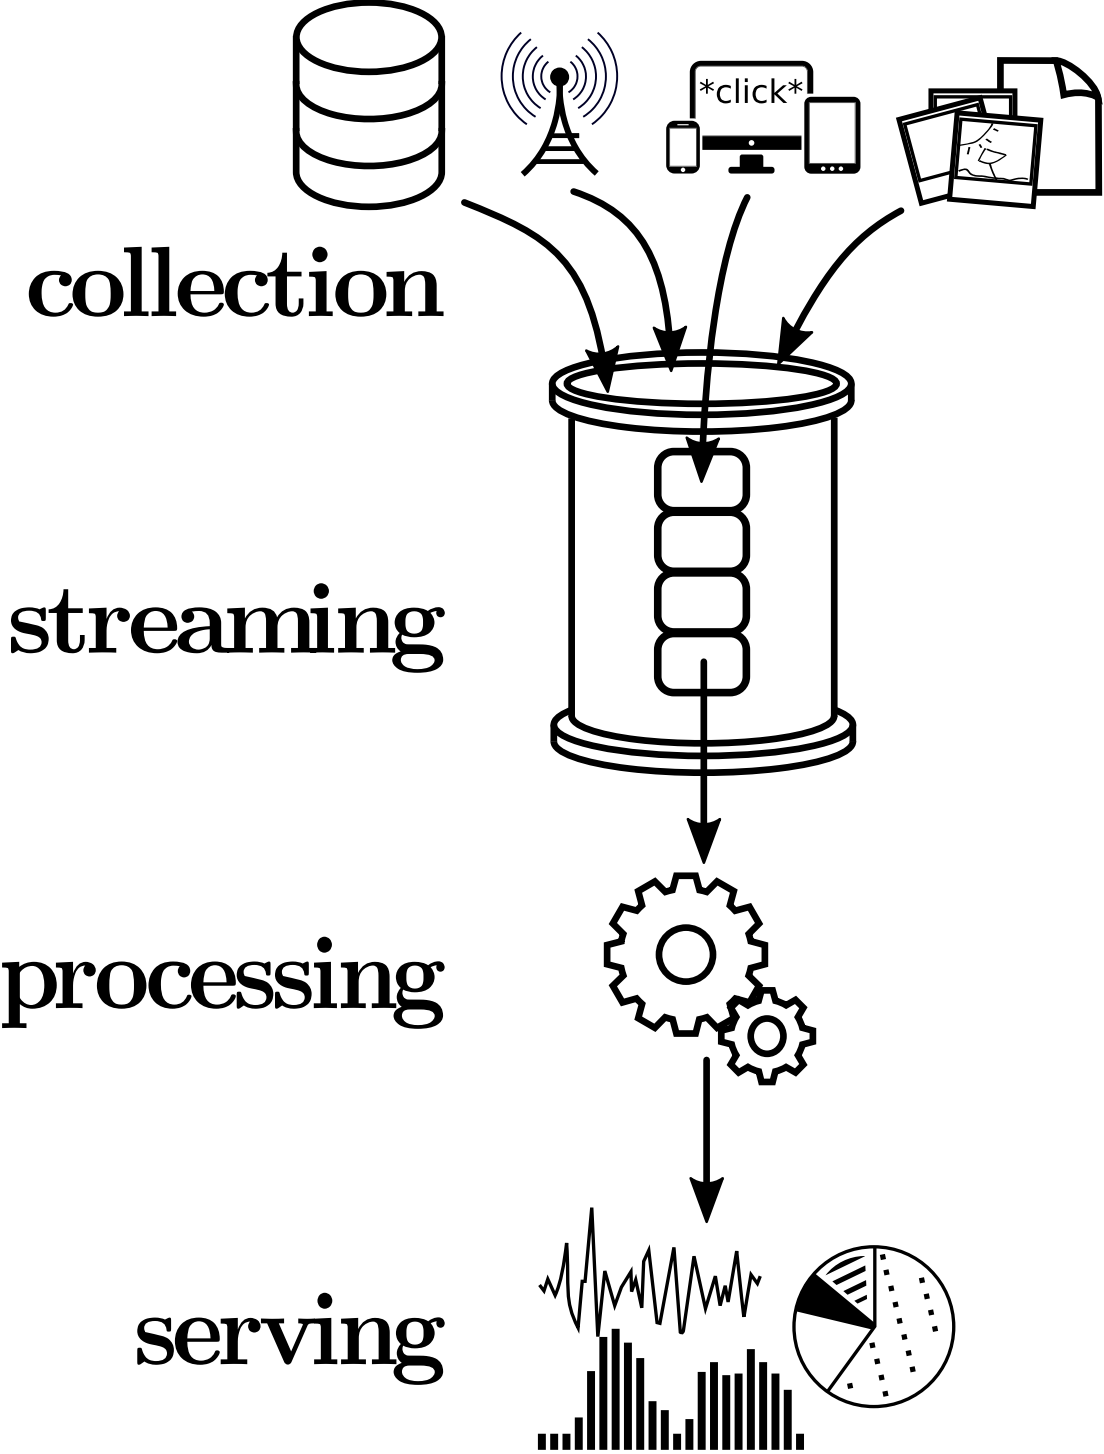 Real-Time Streaming Analytics for Big Data: A Survey and